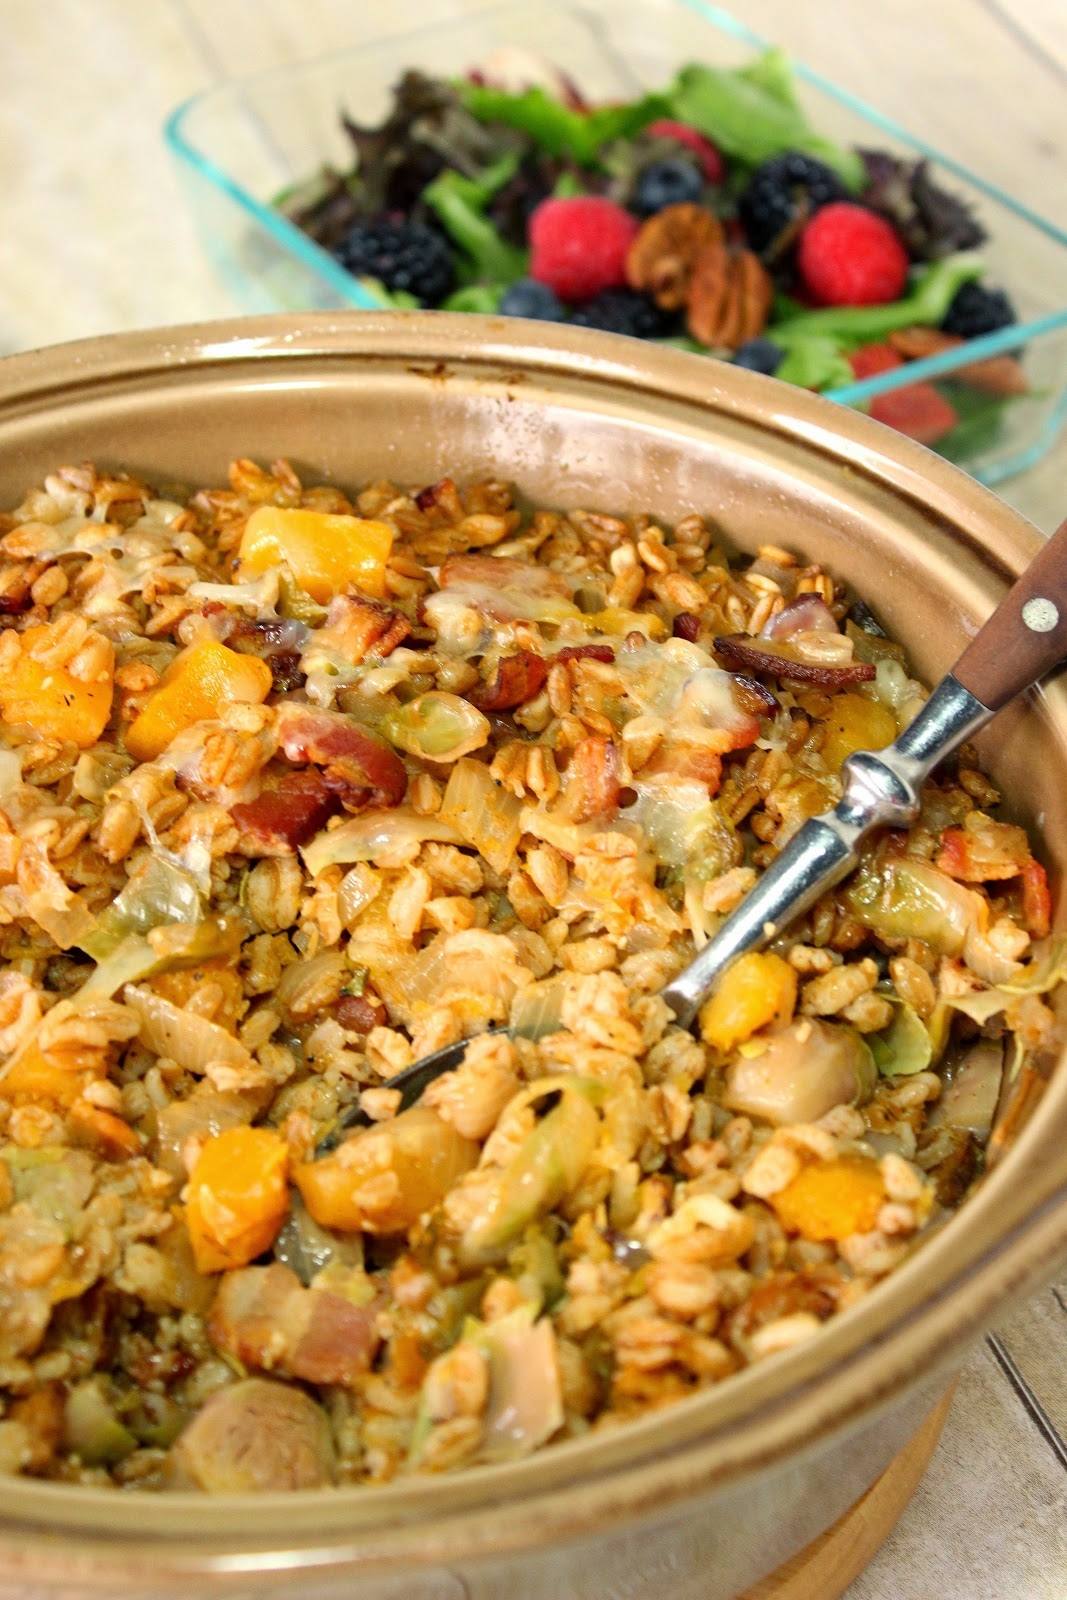 Baked Farro with Butternut Squash and Brussels Sprouts Recipe